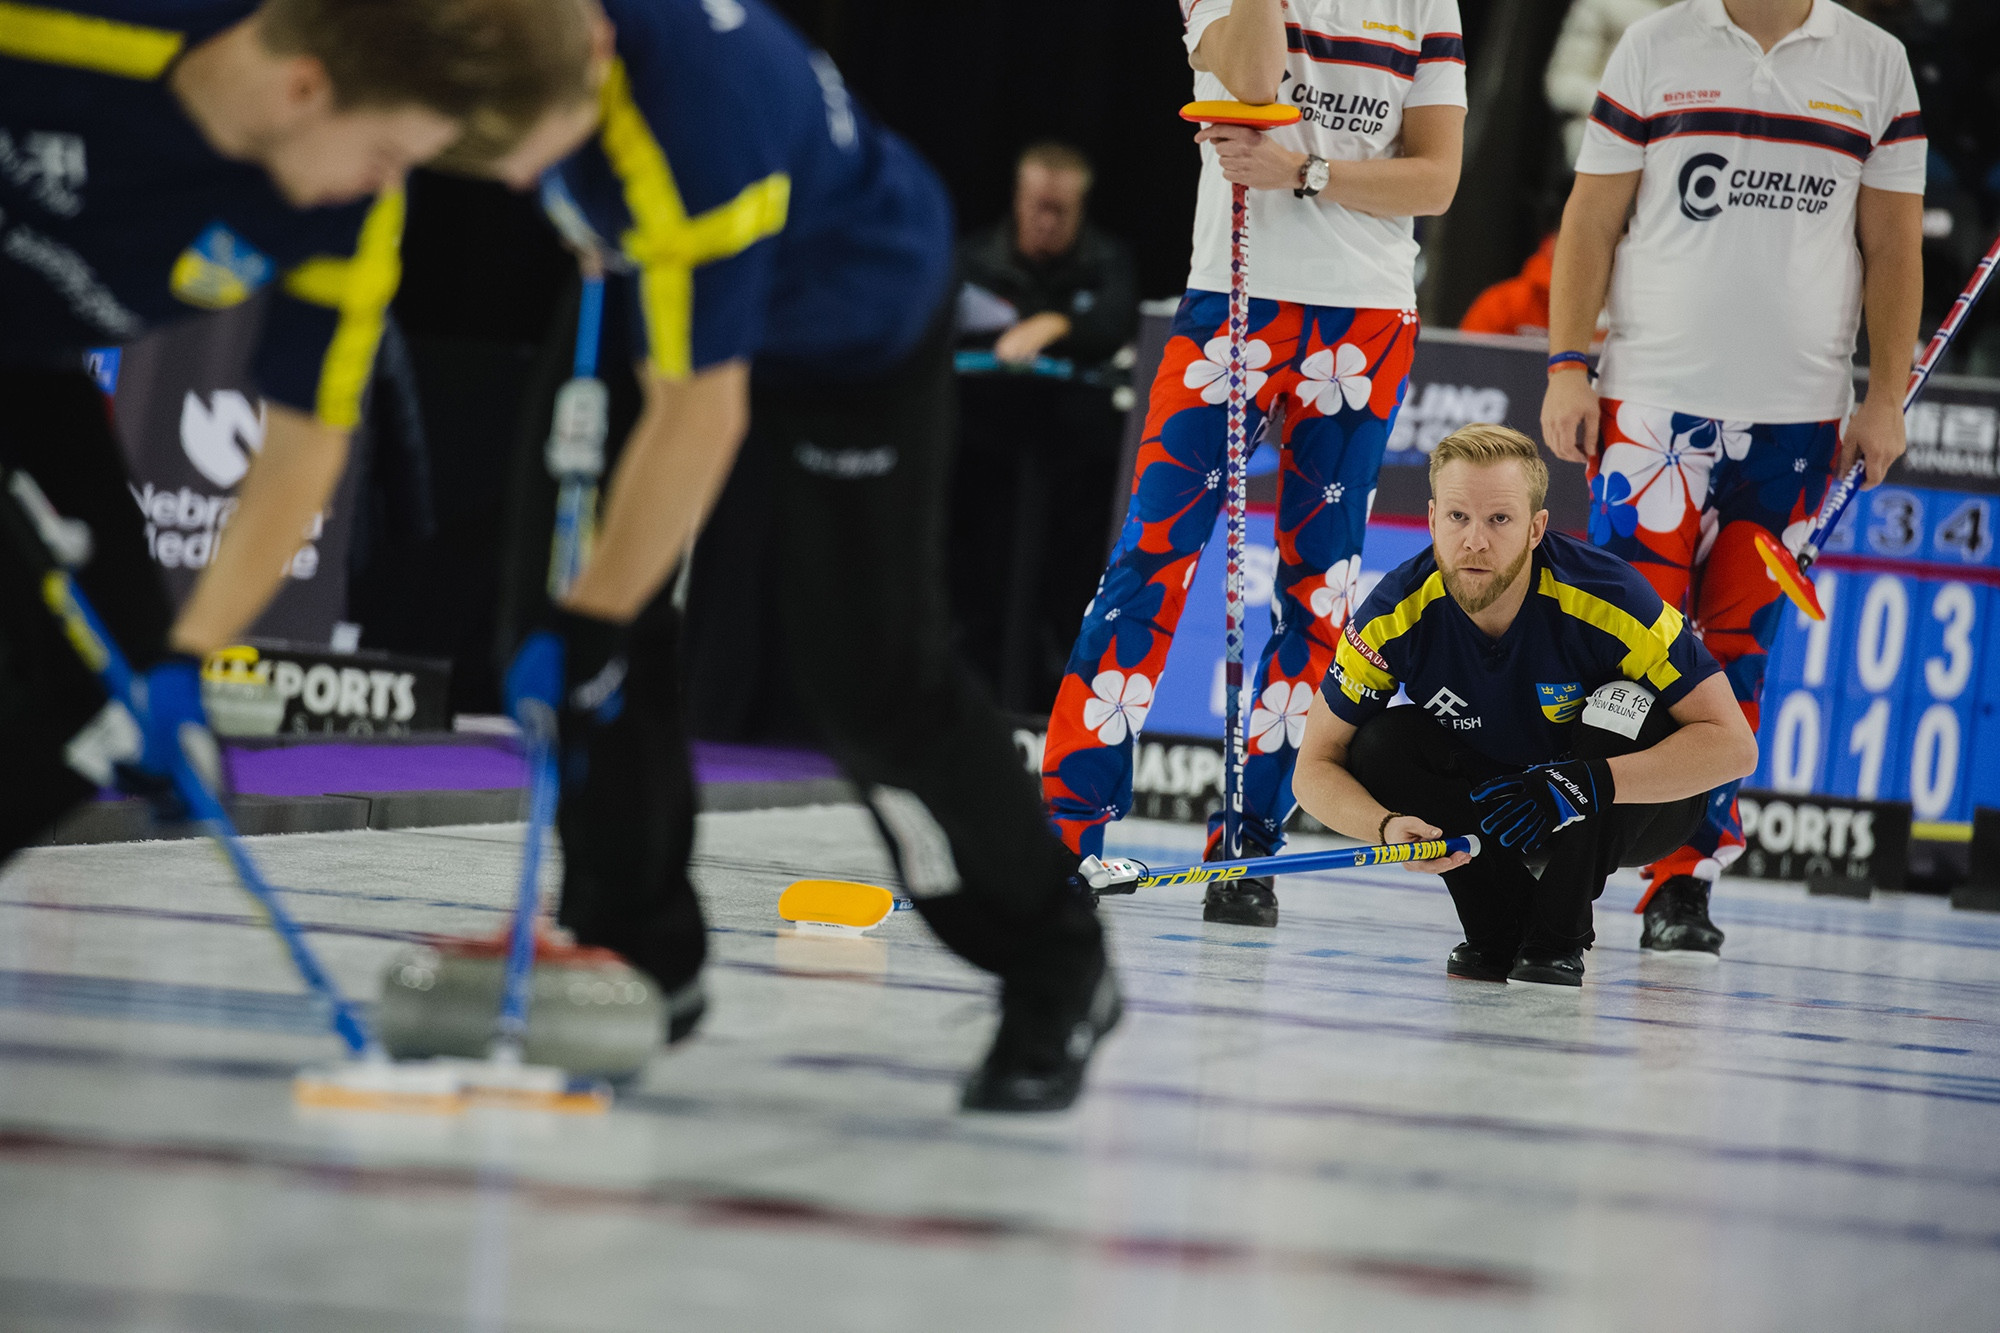 Olympic final rematch to take place between Sweden and United States at Curling World Cup in Omaha